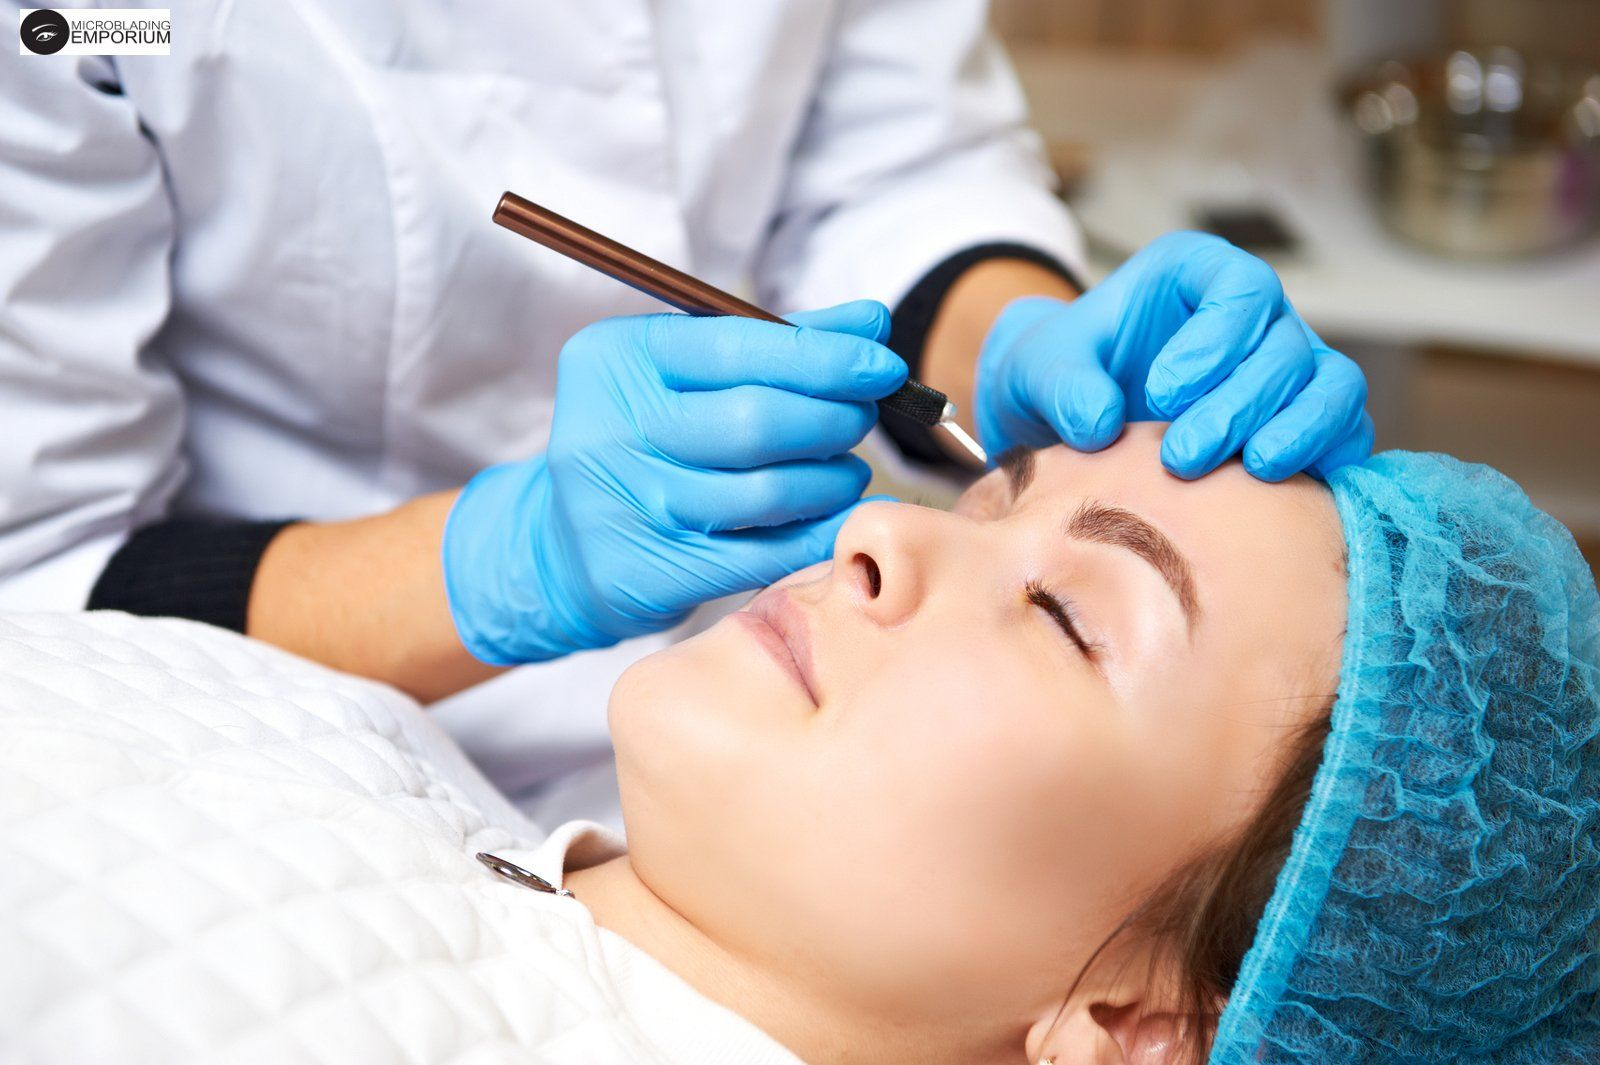 Other Agents for the Microblading Procedure - Microblade Supplies